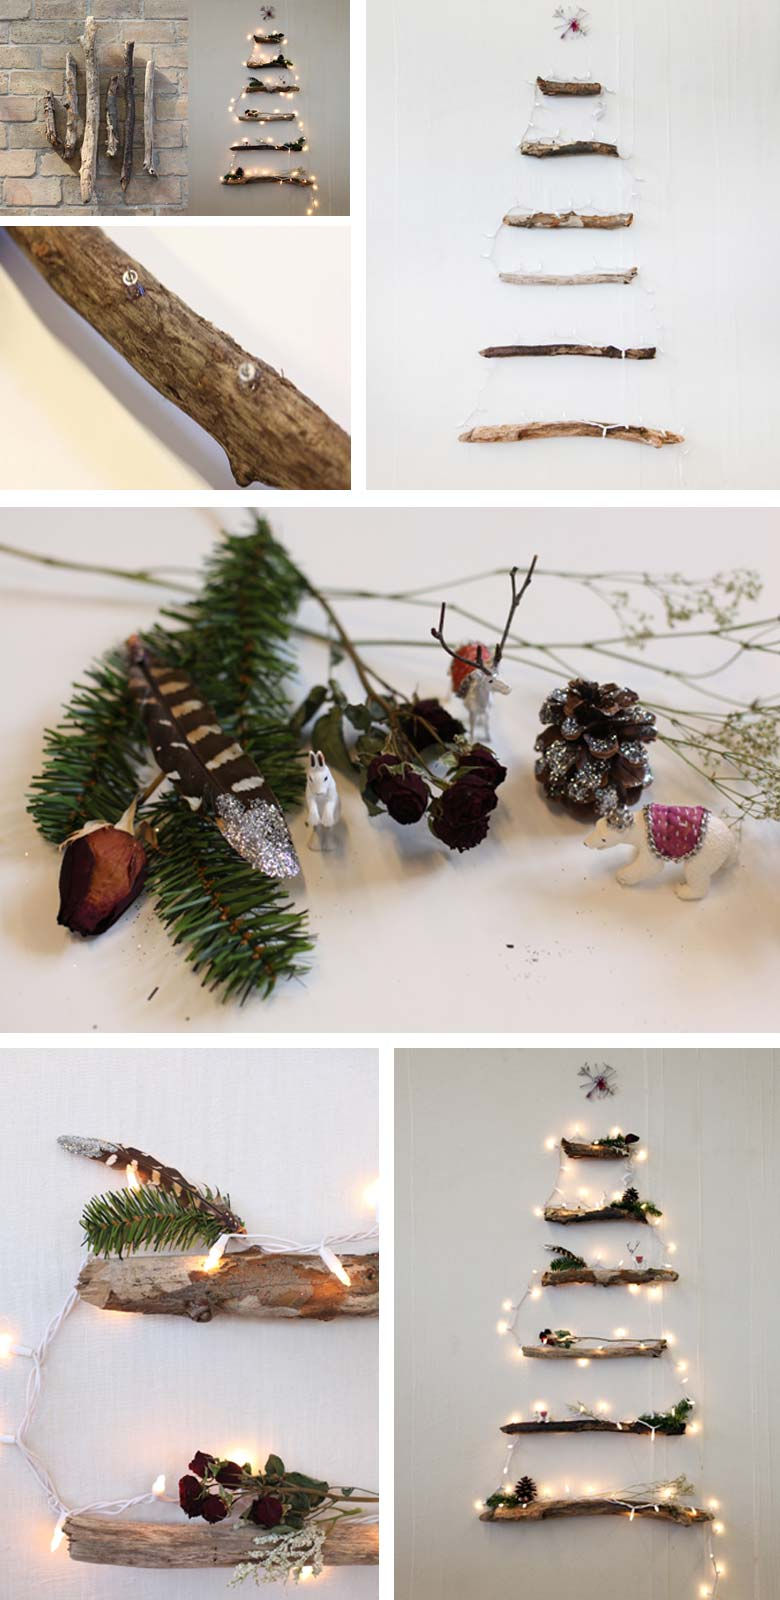 how to decorate a small living room for christmas - DIY Alternative Christmas Tree with Lighted Branches #smallspaces #tinyhouseliving #smallspaceliving #alternativechristmastree #christmastreedecorideas